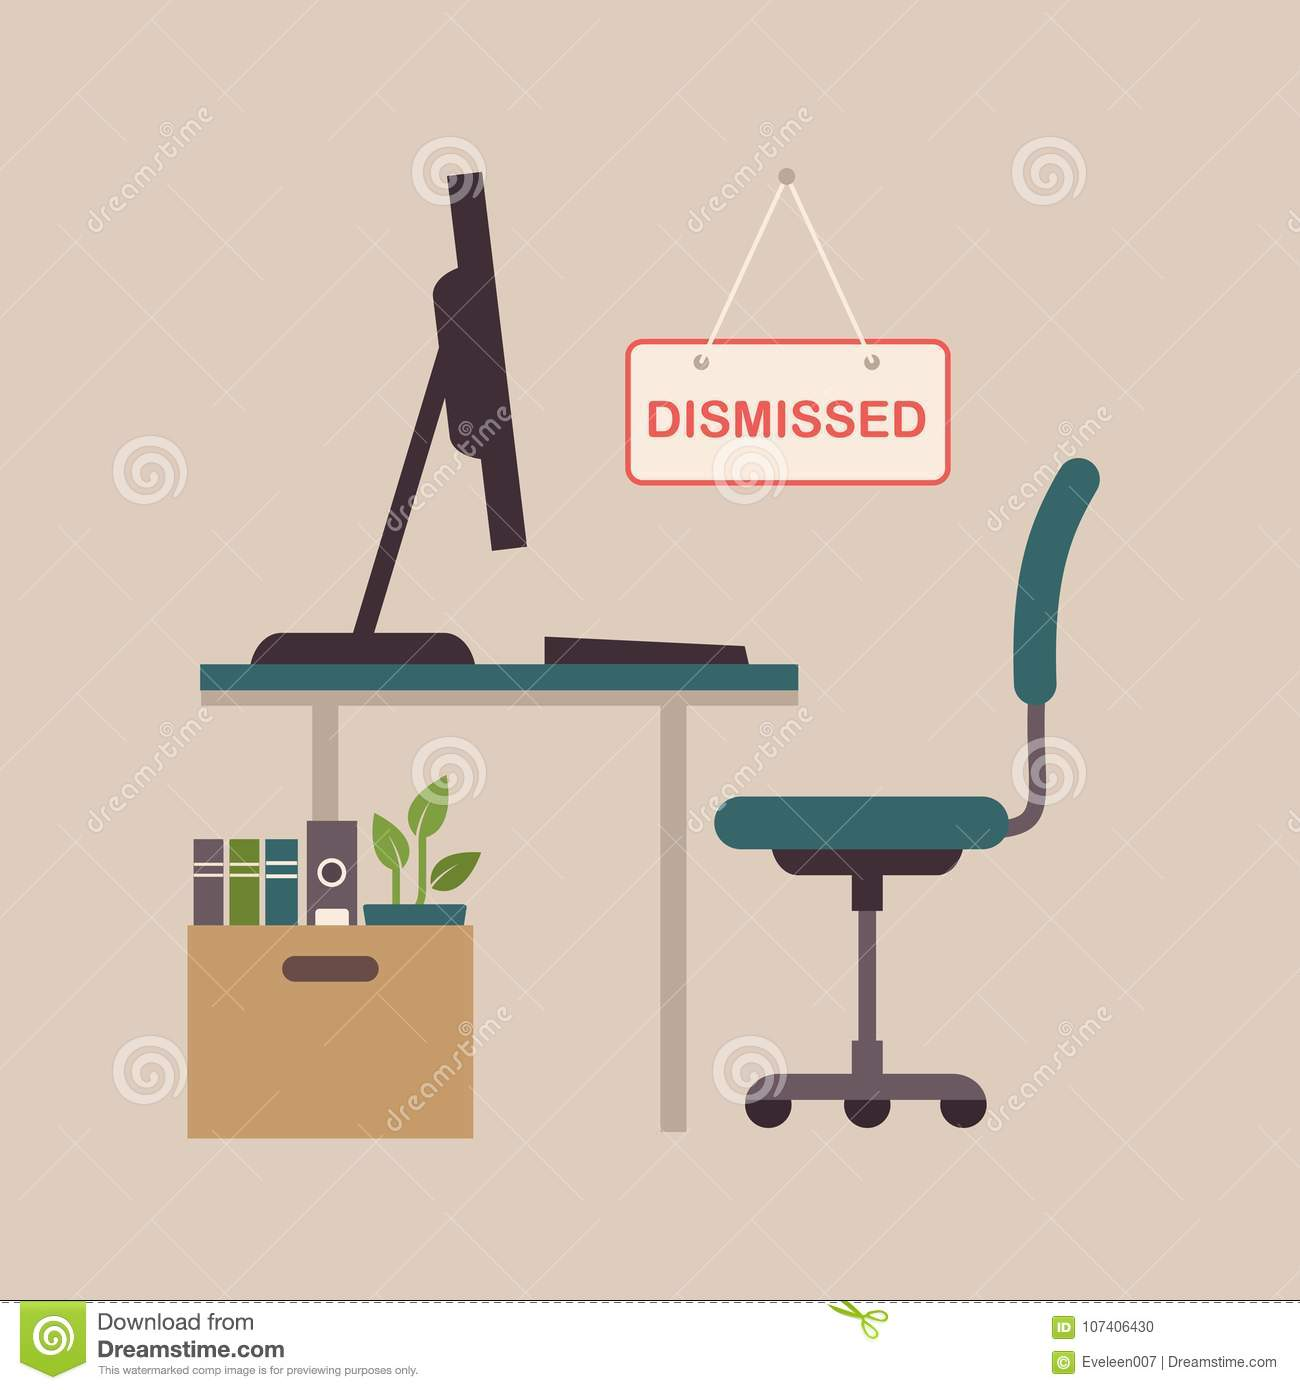 Fired Job Concept, Office Chair, Business Work Dismissal Stock